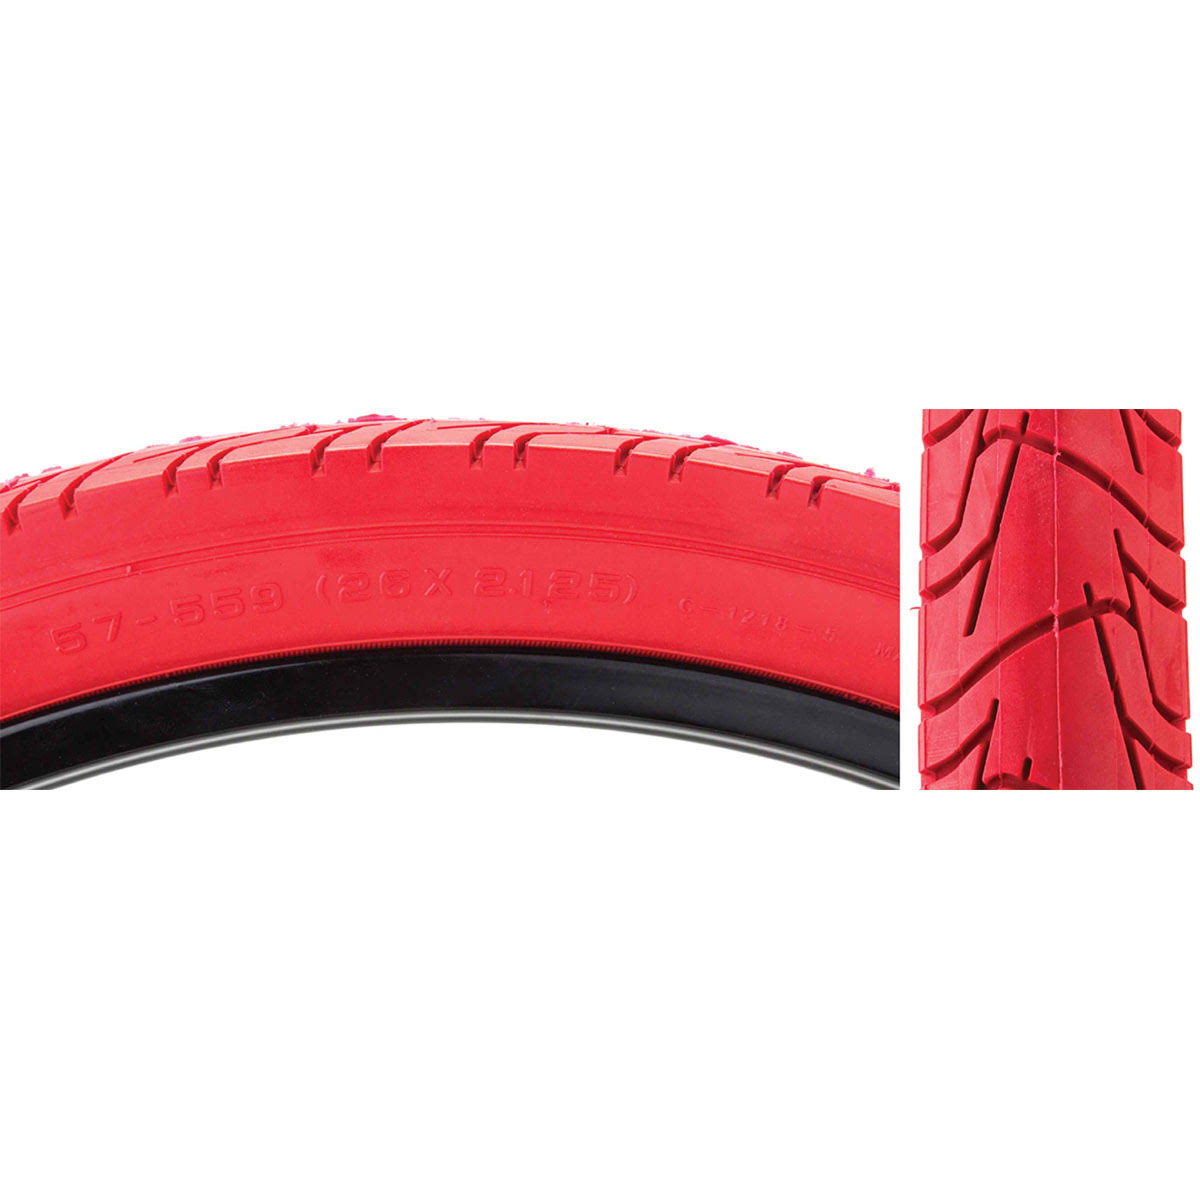 "Sunlite City Cst1218 Tires - 26"" x 2.125"", Red/Red"